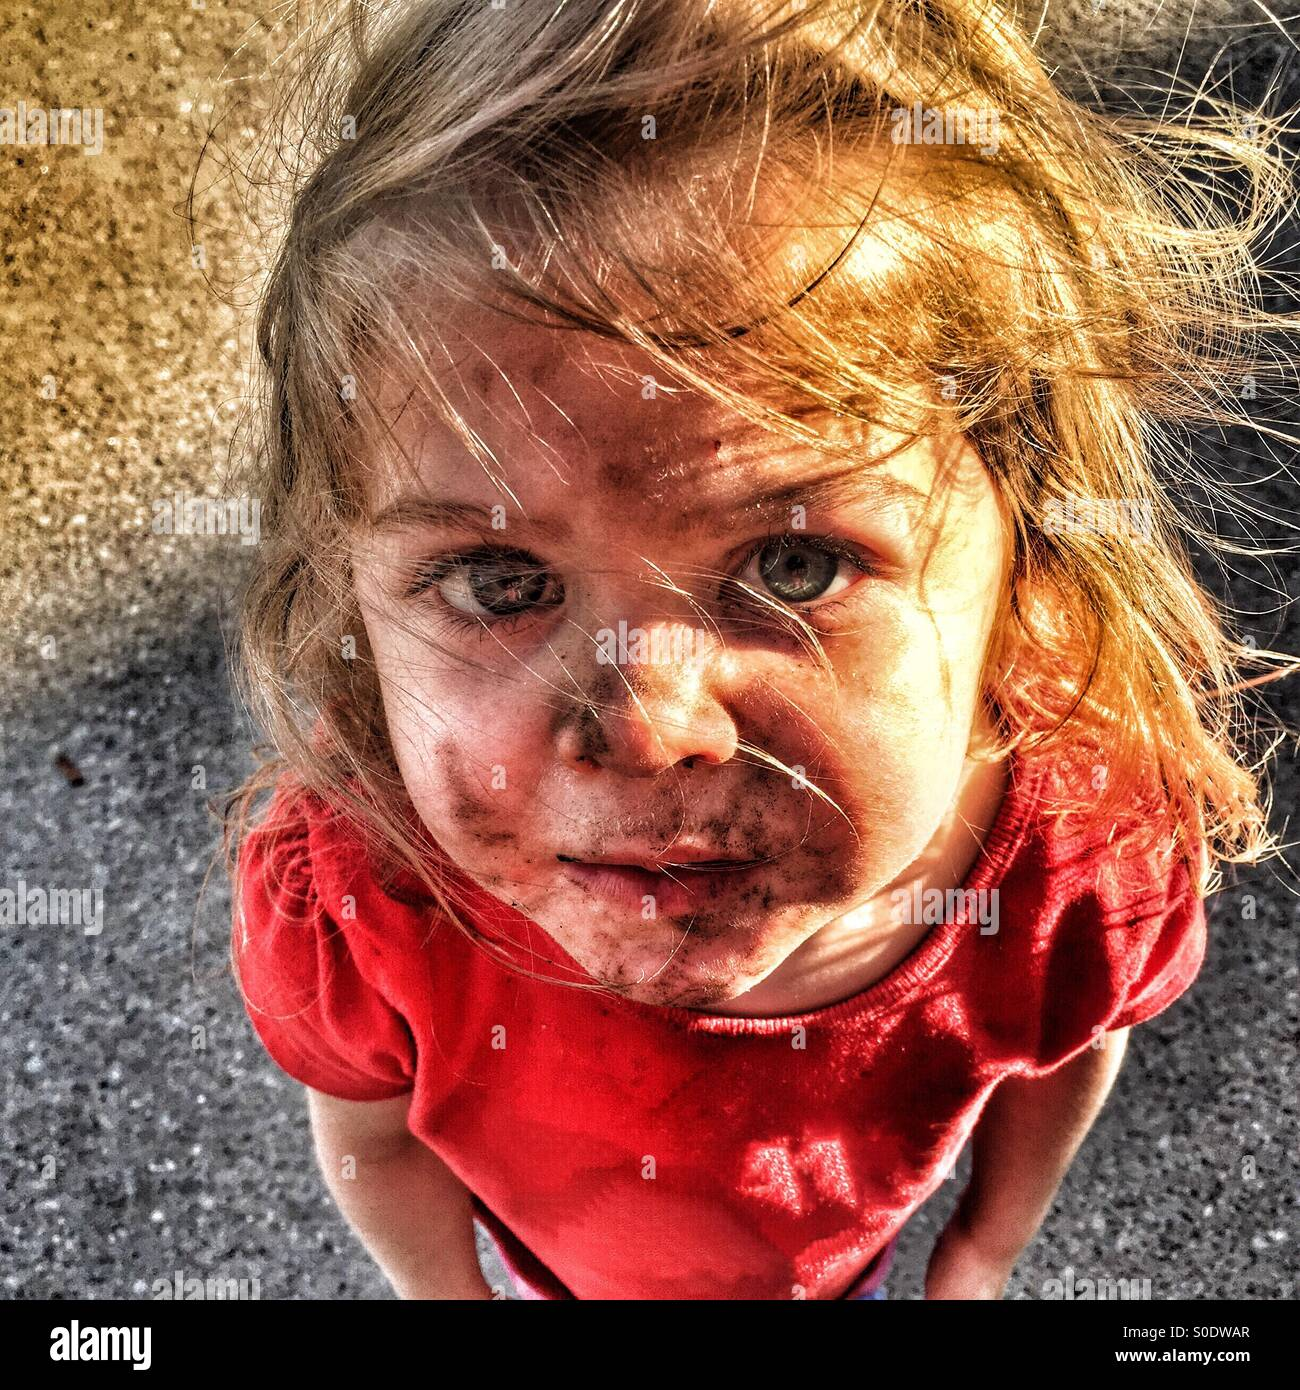 Child with a dirty face and windswept hair looking up - Stock Image